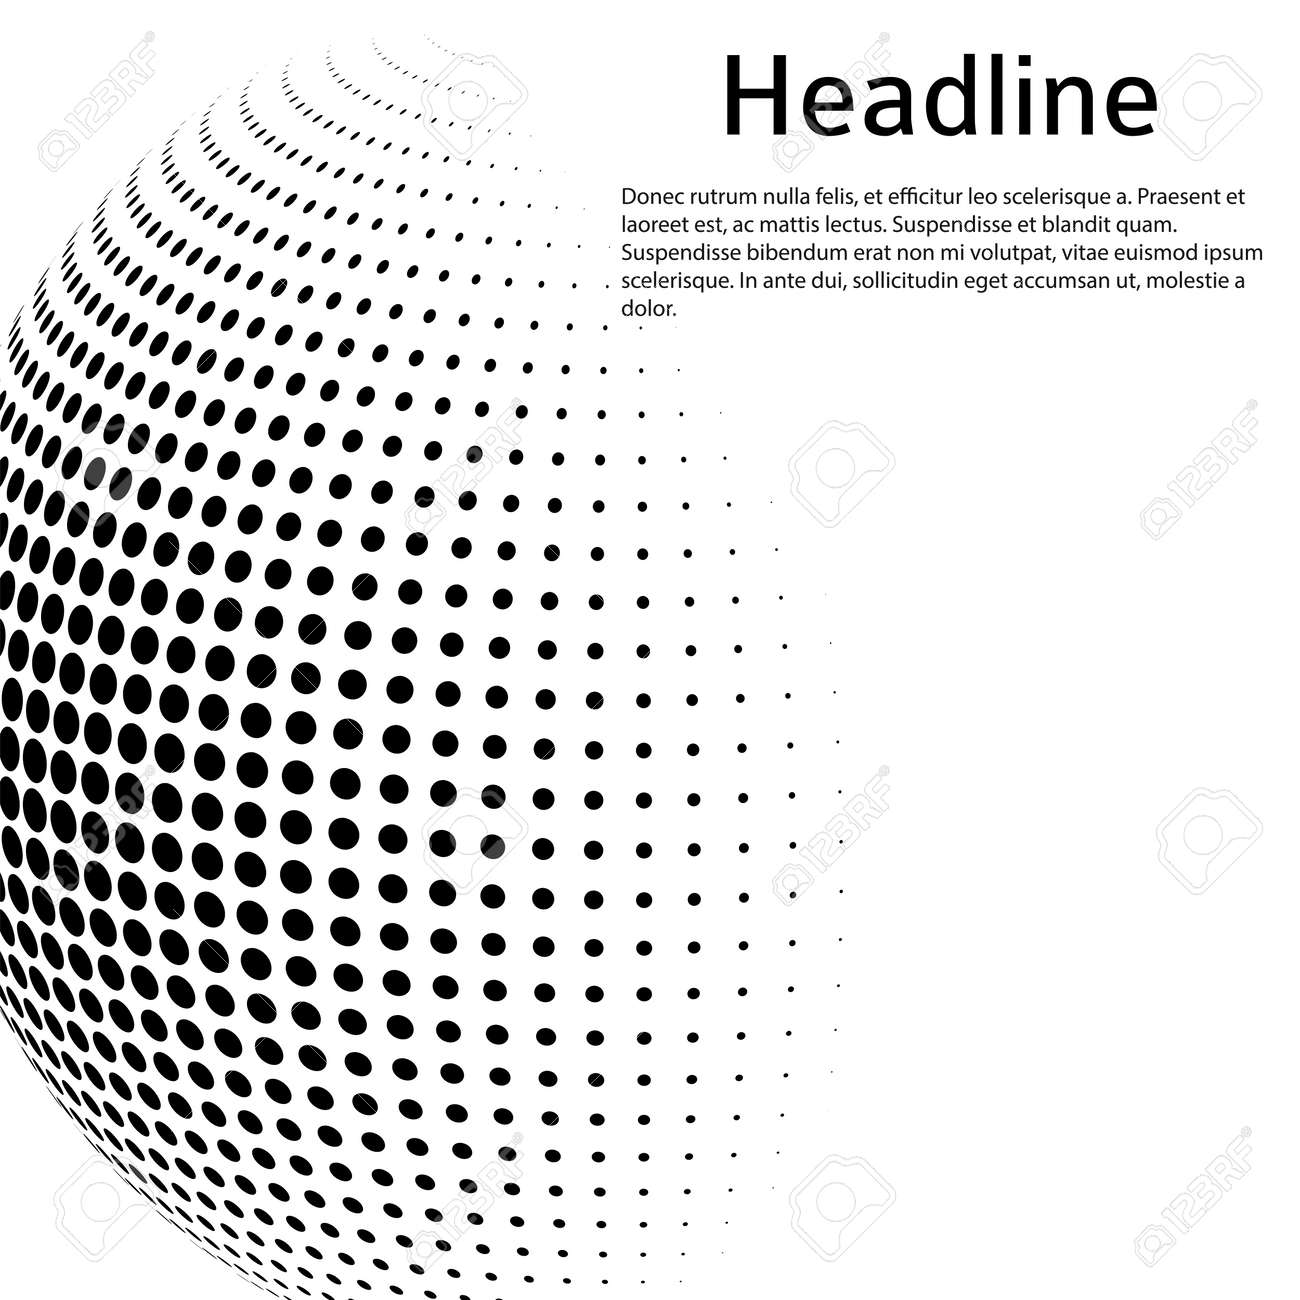 3D decorative balls with chess dot spheres isolated on white. Vector illustration . Design elements for your advertising flyer, presentation template, brochure layout, book cover - 159923413